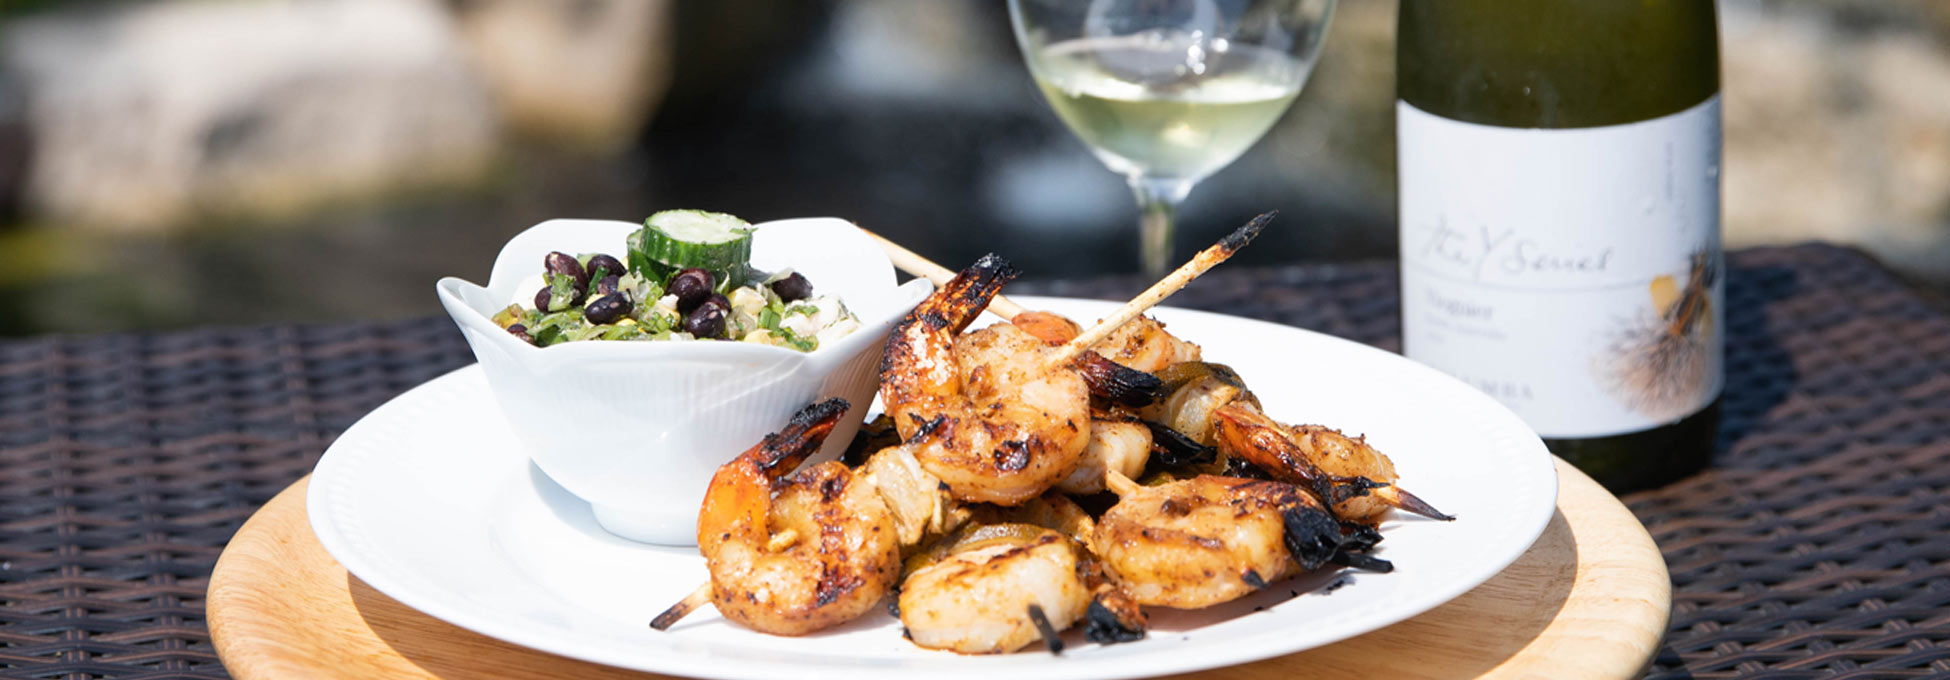 trigs-homepg-ranch-fork-marinated-shrimp-kabob.jpg